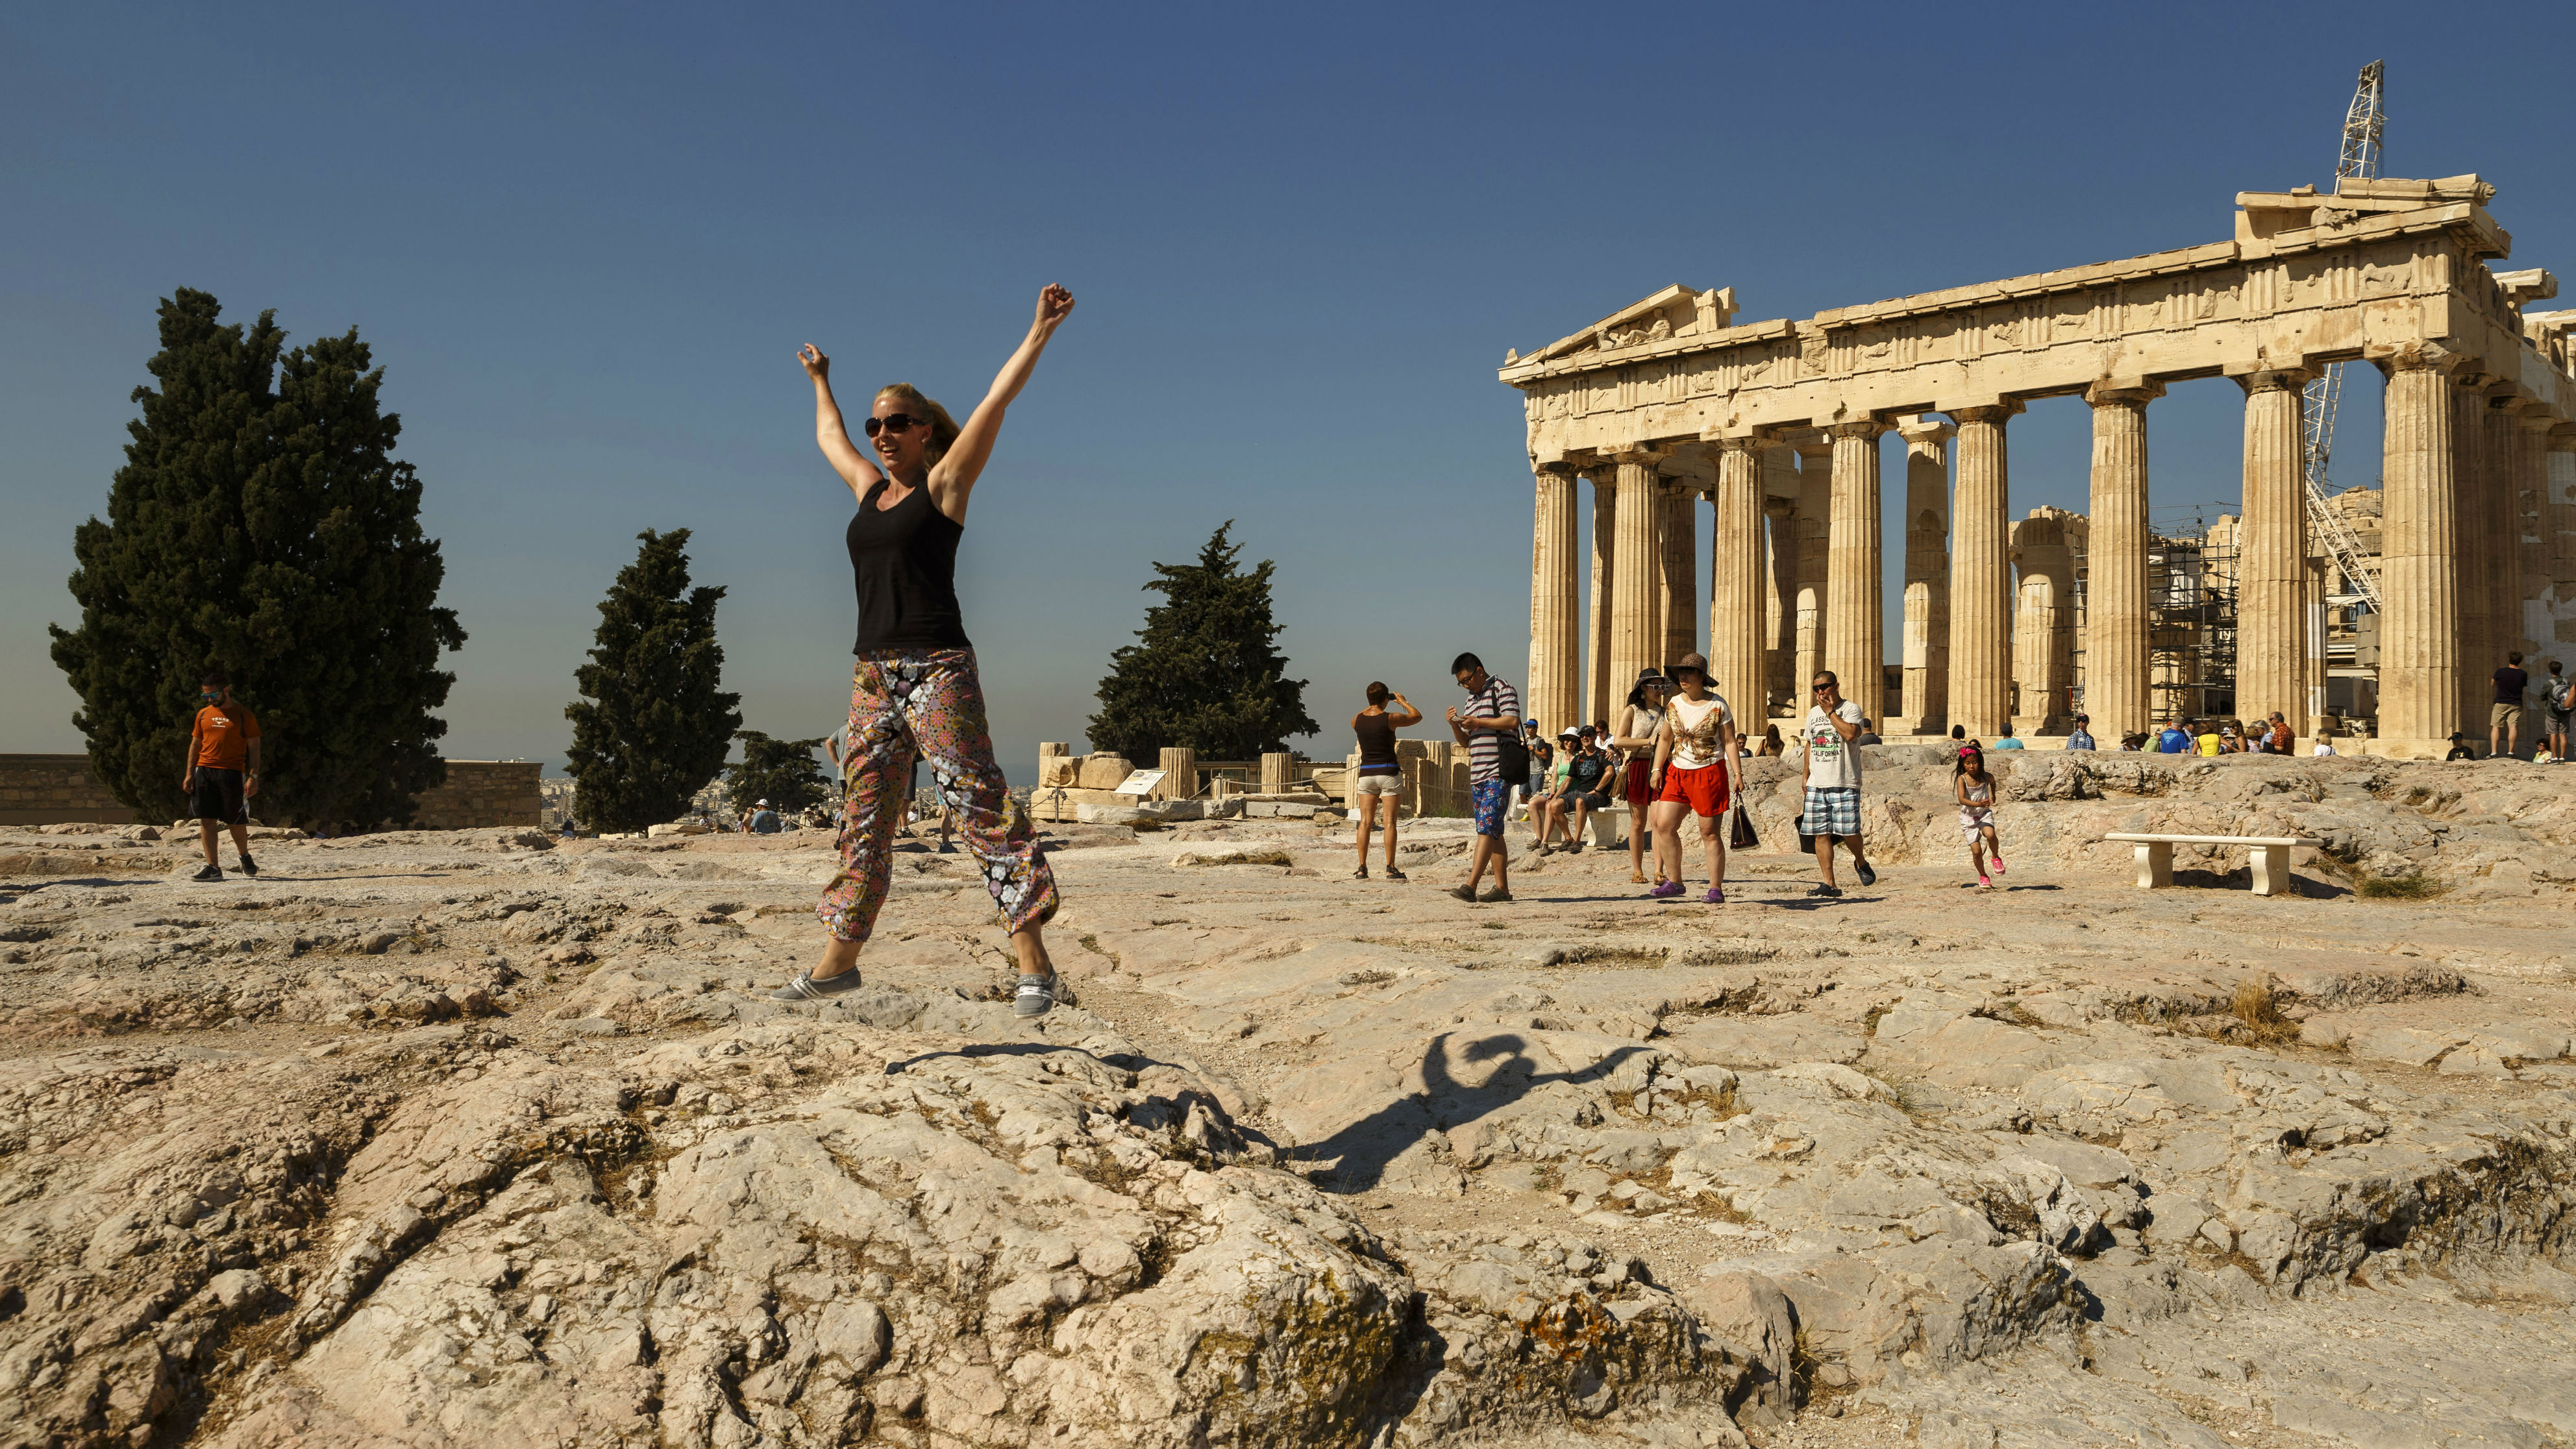 As the ancient Greeks rested and had fun